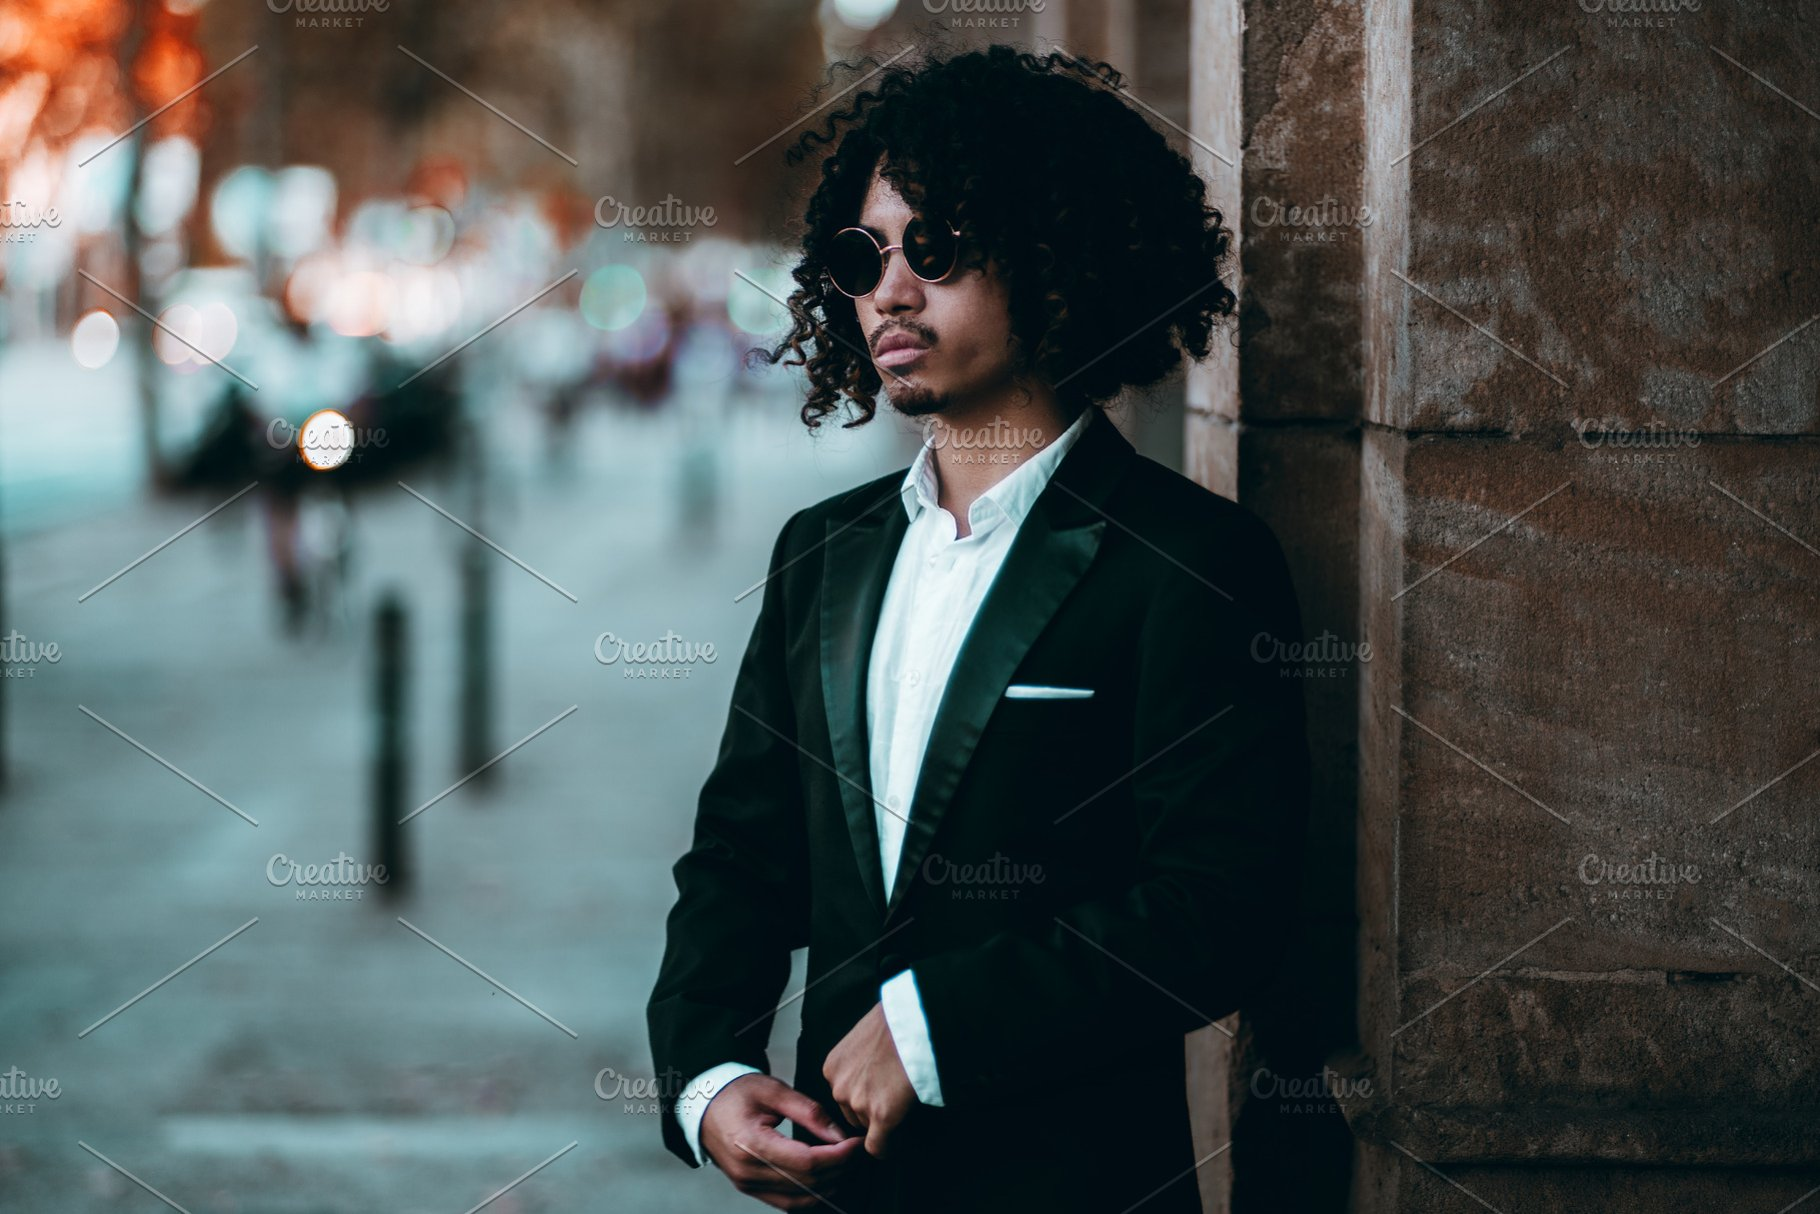 Elegant young Asian guy in a suit ~ People Photos ~ Creative Market